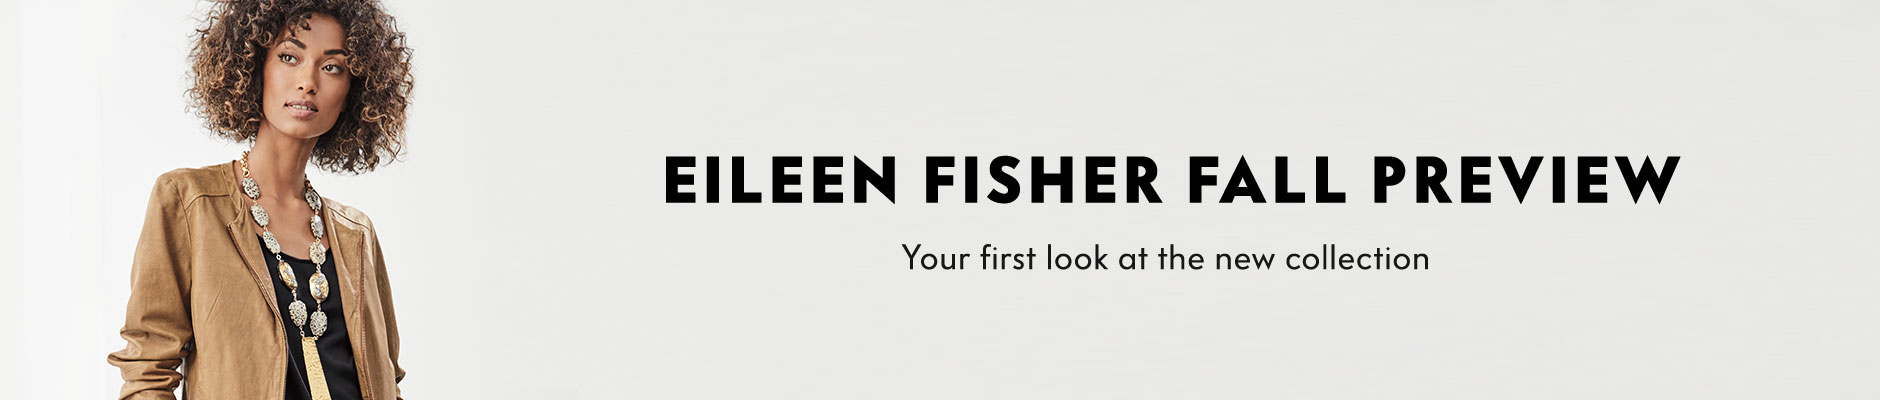 Eileen Fisher Fall Preview - Your first look at the new collection